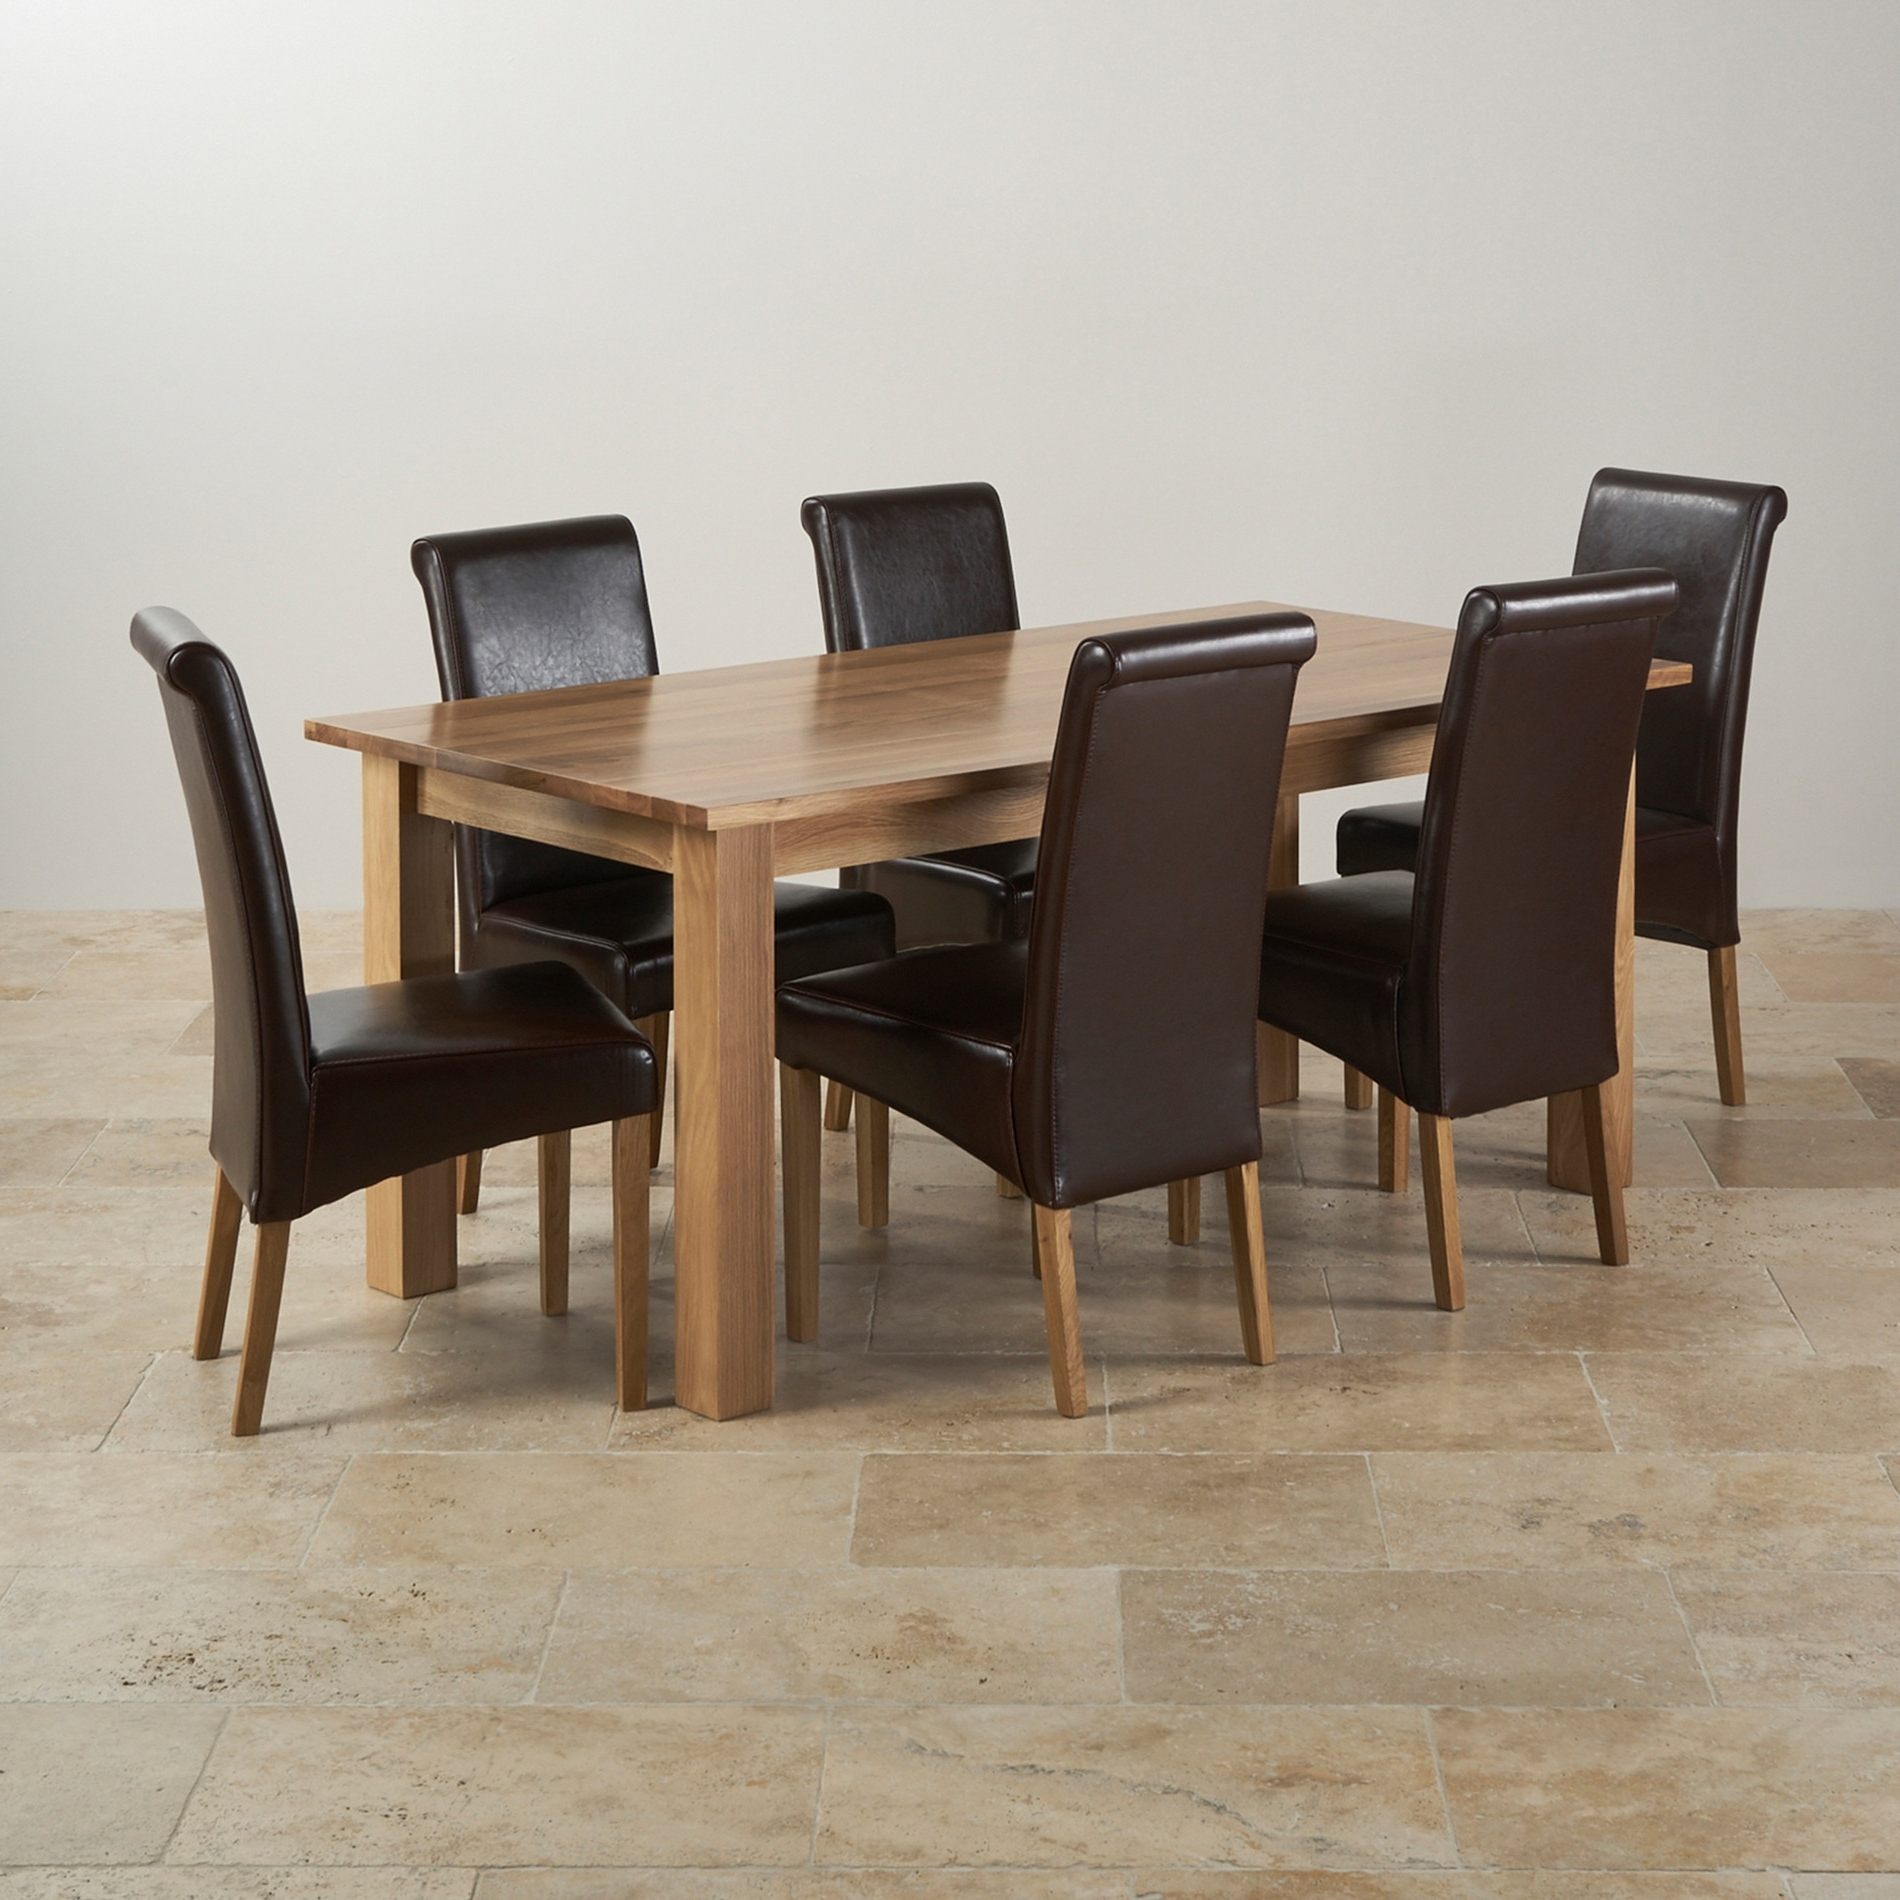 Oak Furniture Dining Sets For Most Recent Dining Room Tables Oak Furniture Land Ever X Wood Tufted Dining Room (View 15 of 25)